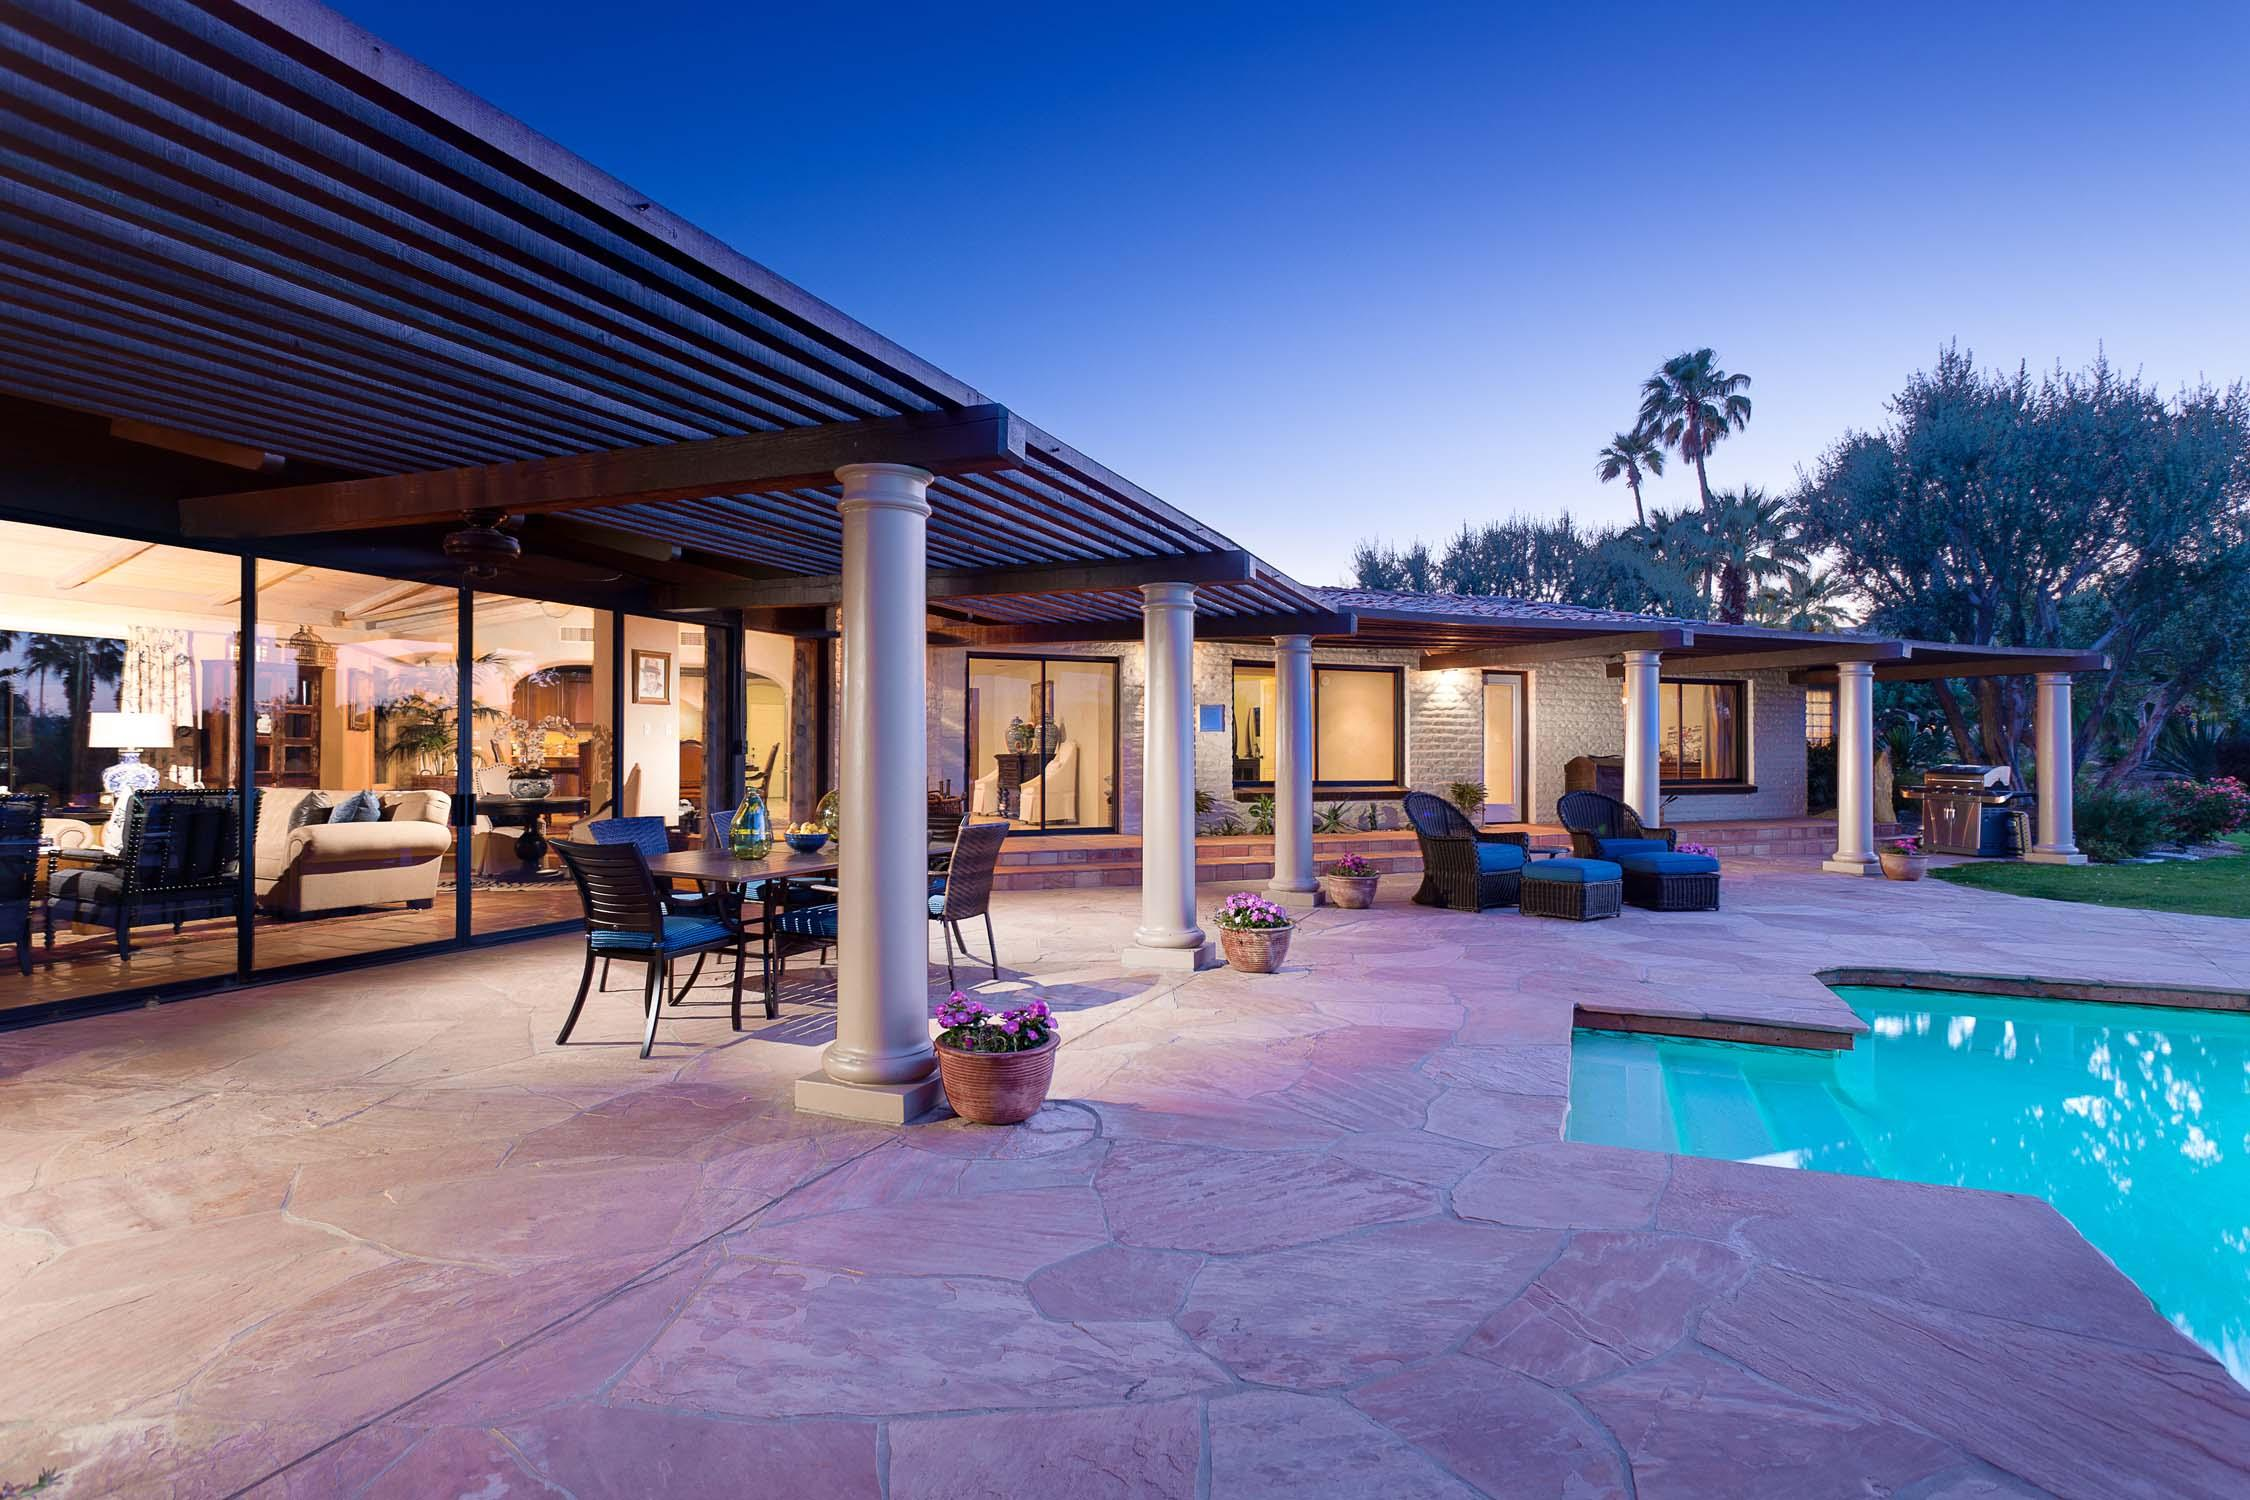 Bing crosby estate in california brownell travel for Distinctive villas